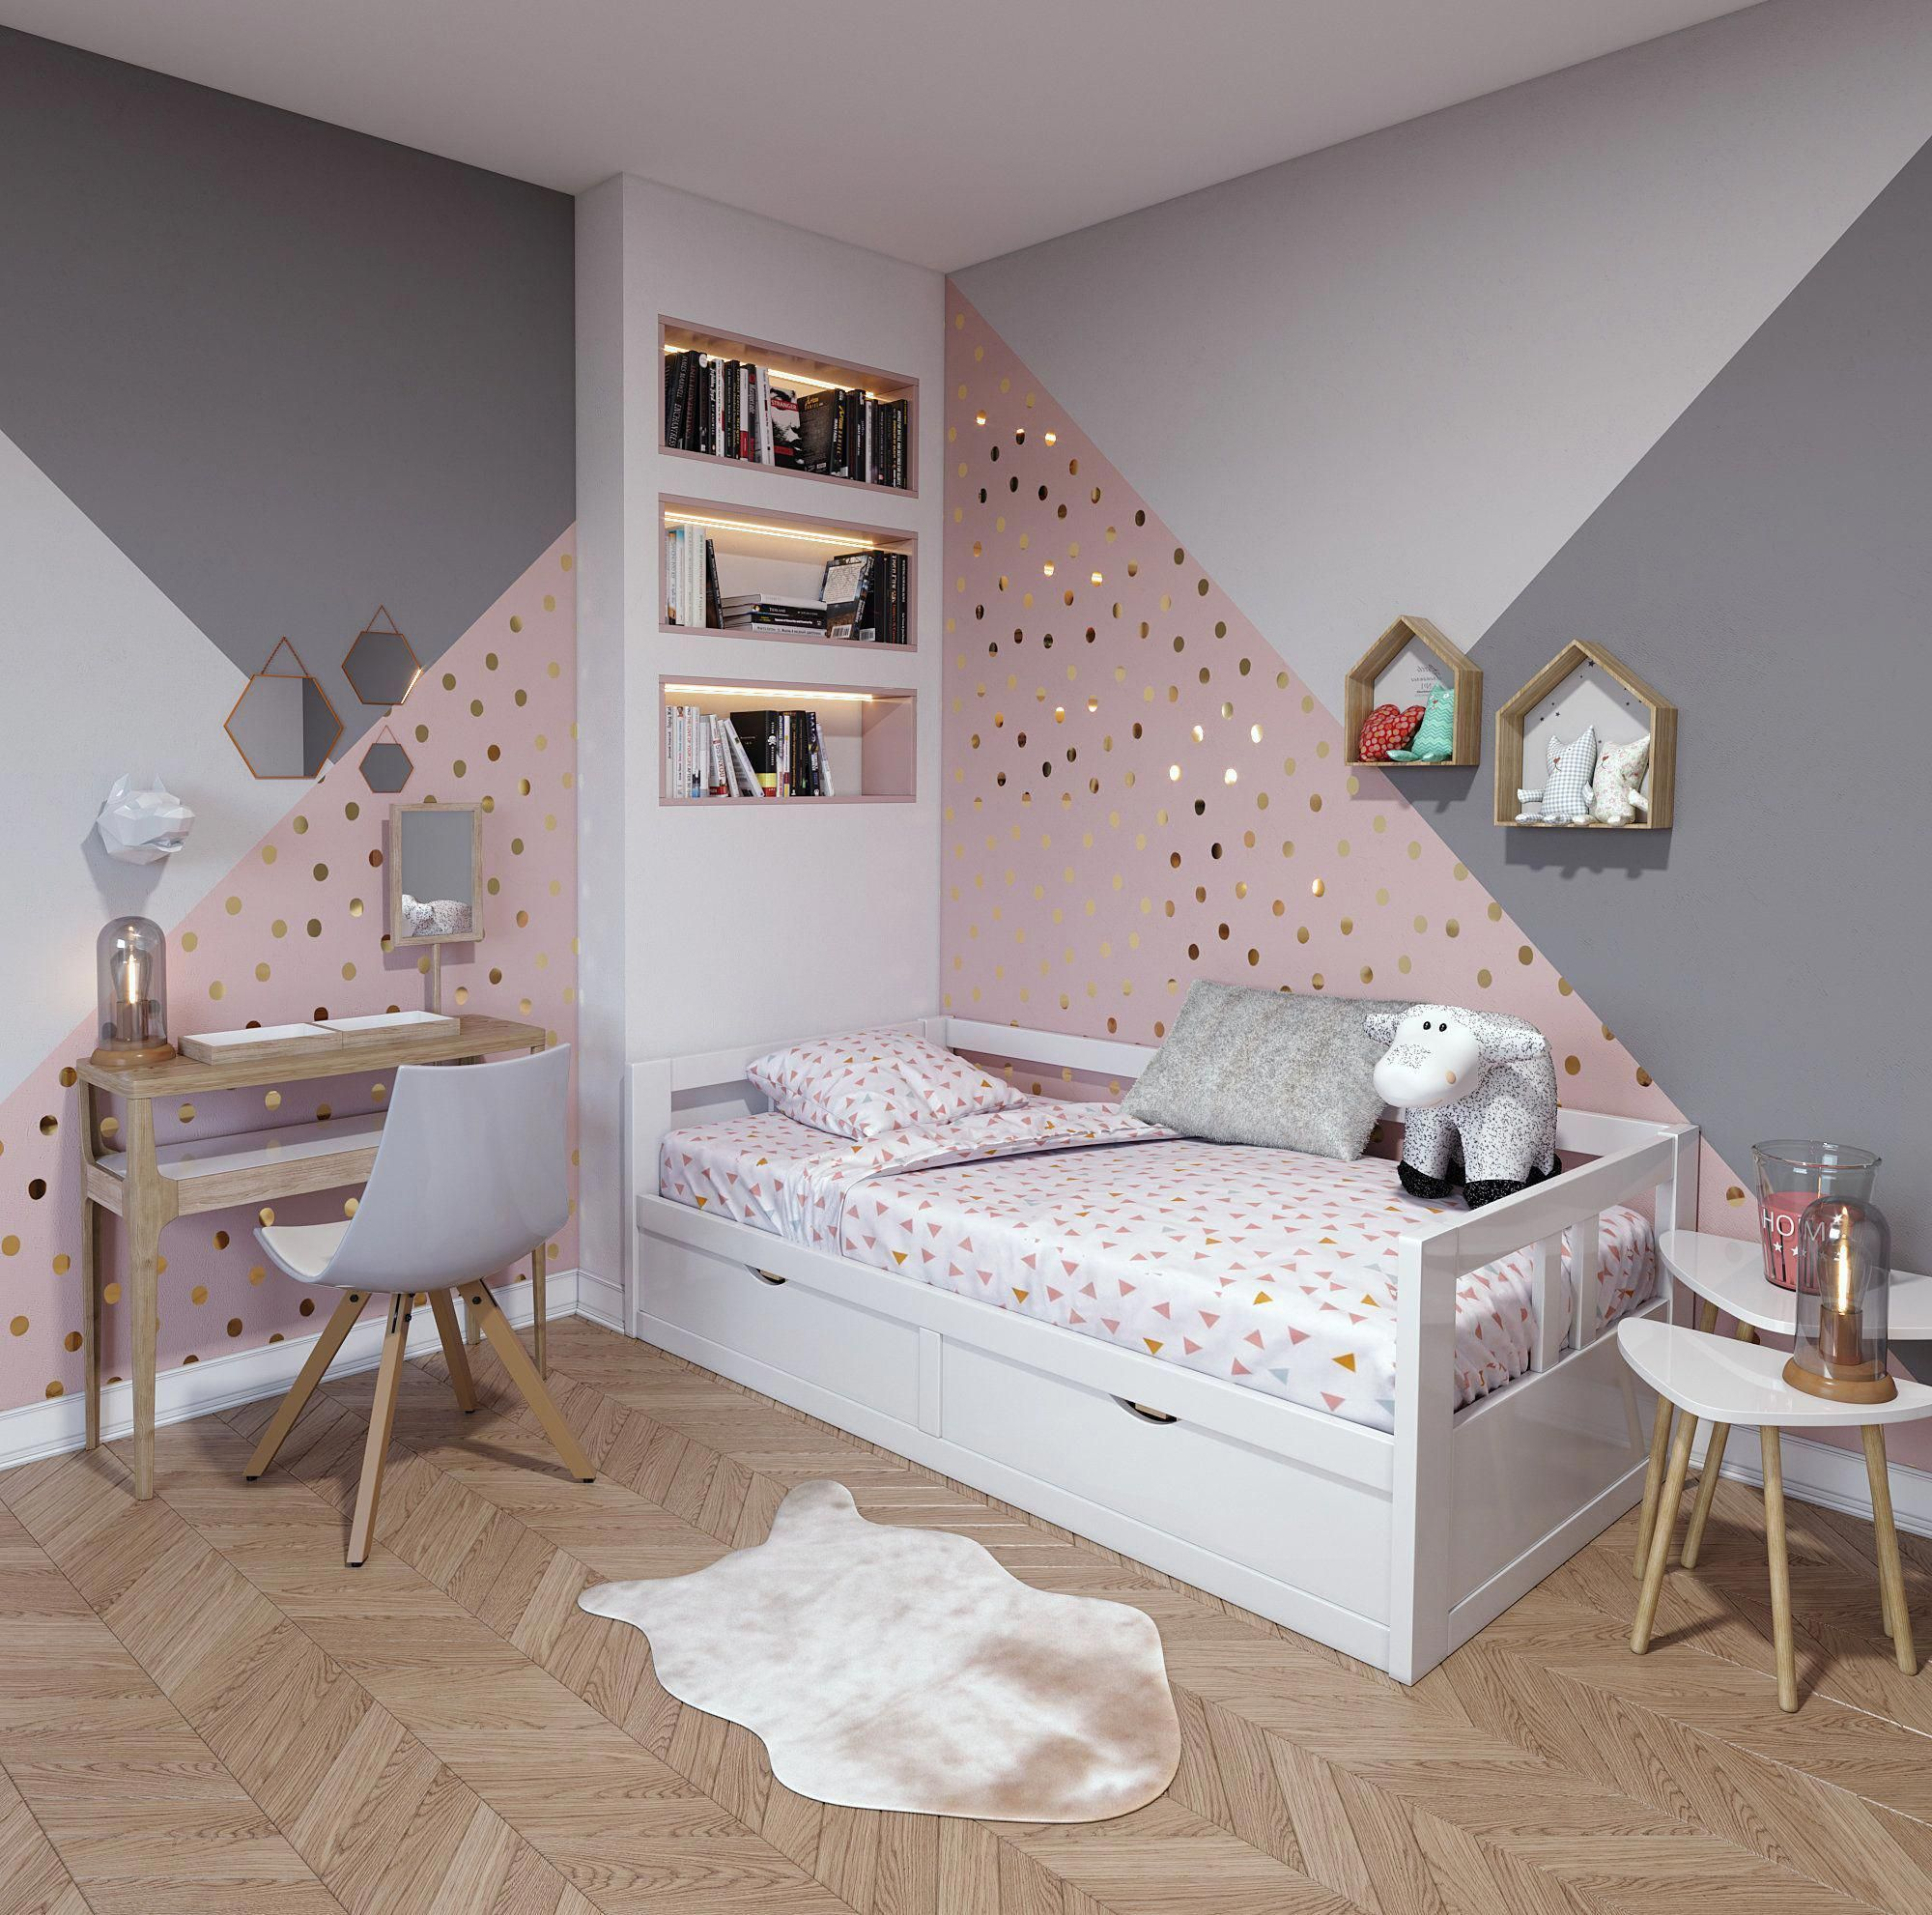 Pink Is The Perfect Colour For Girl S Bedroom Discover More Pink Inspirations With Circu Furniture Fo In 2020 Girl Bedroom Walls Bedroom Decorating Tips Girly Bedroom